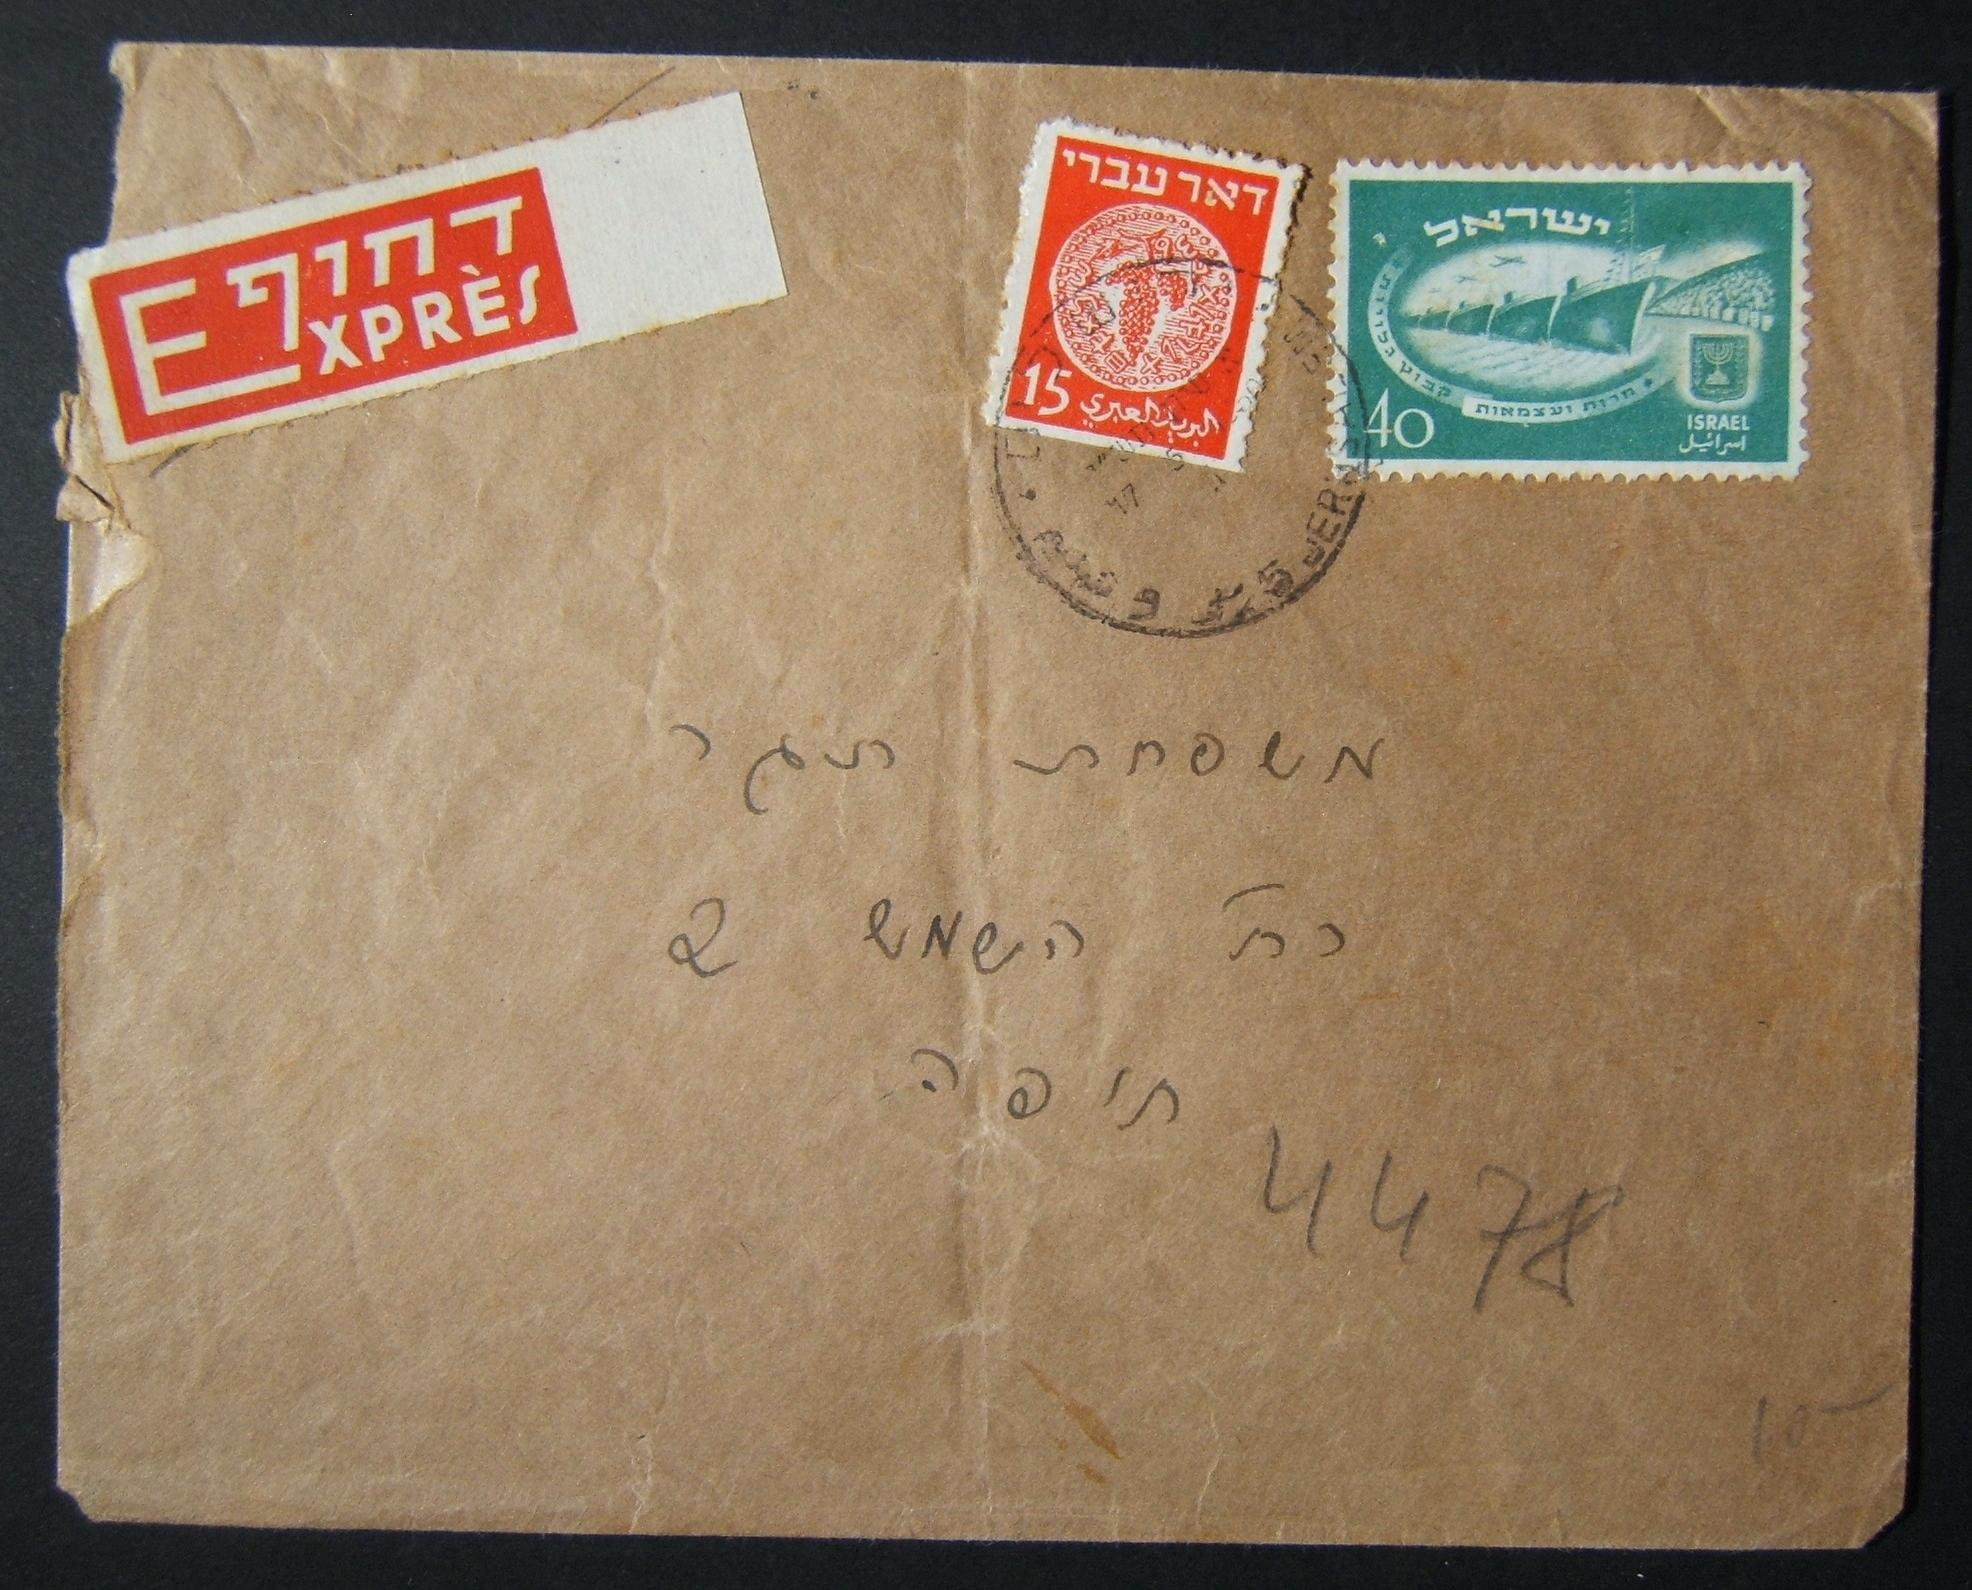 17-5-1950 Jerusalem to Haifa express mail with Independence & Doar Ivri franking